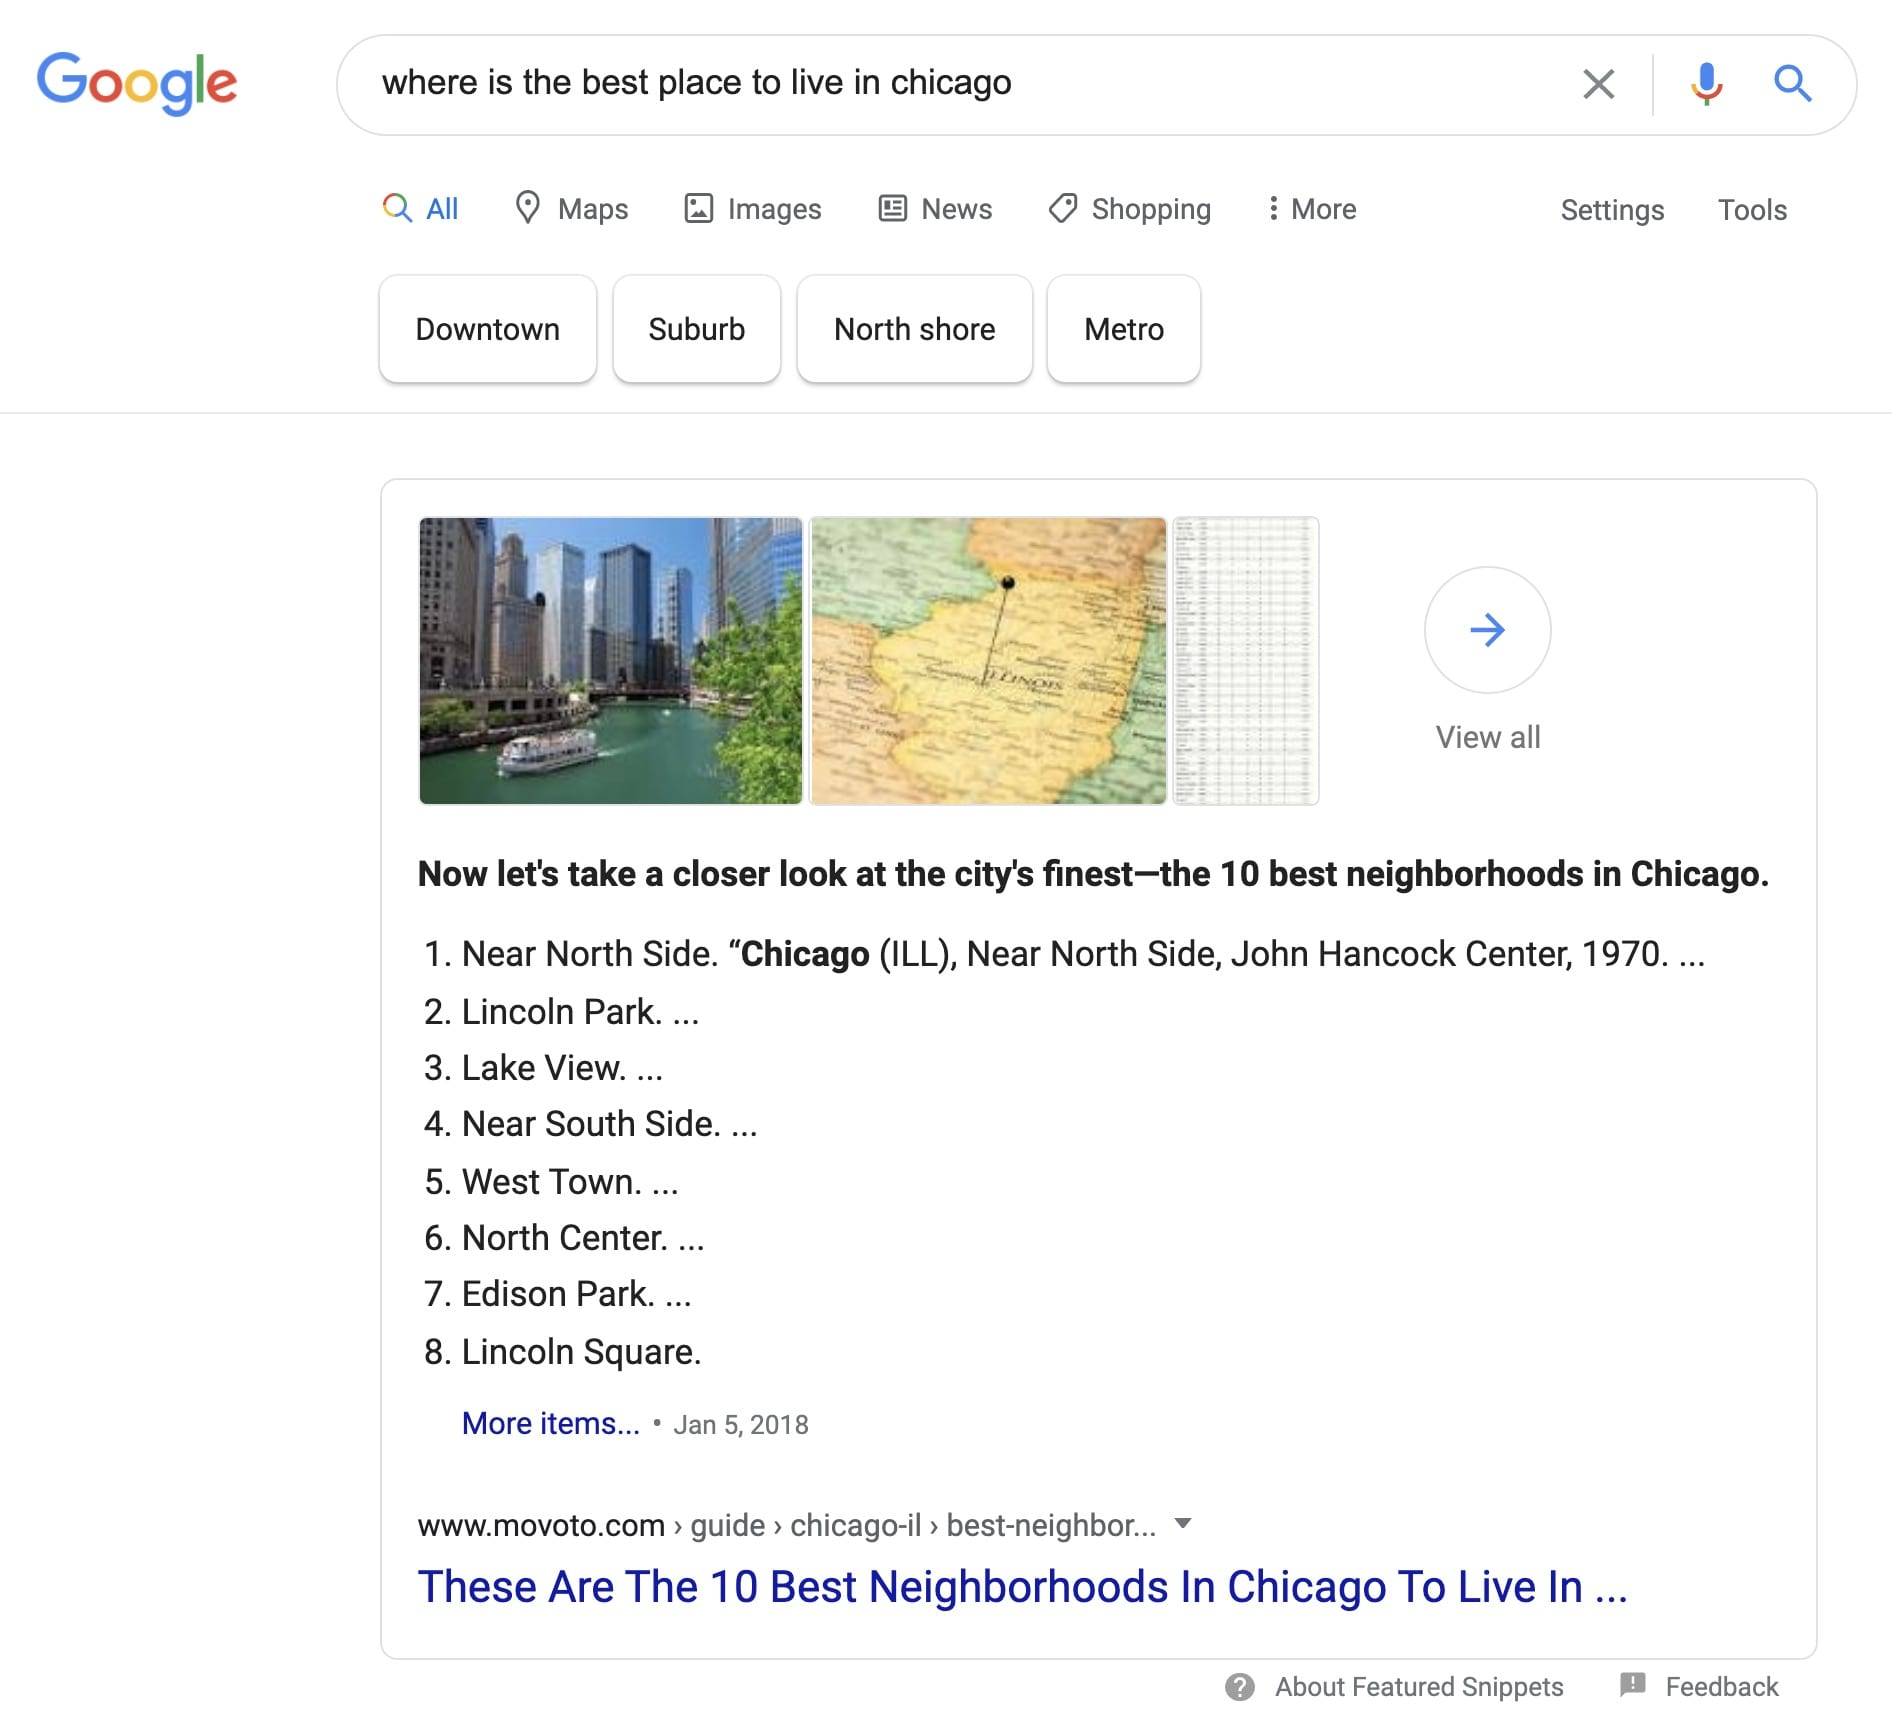 Where is the best place to live in chicago is a search on Google that returns a blog written by moveto